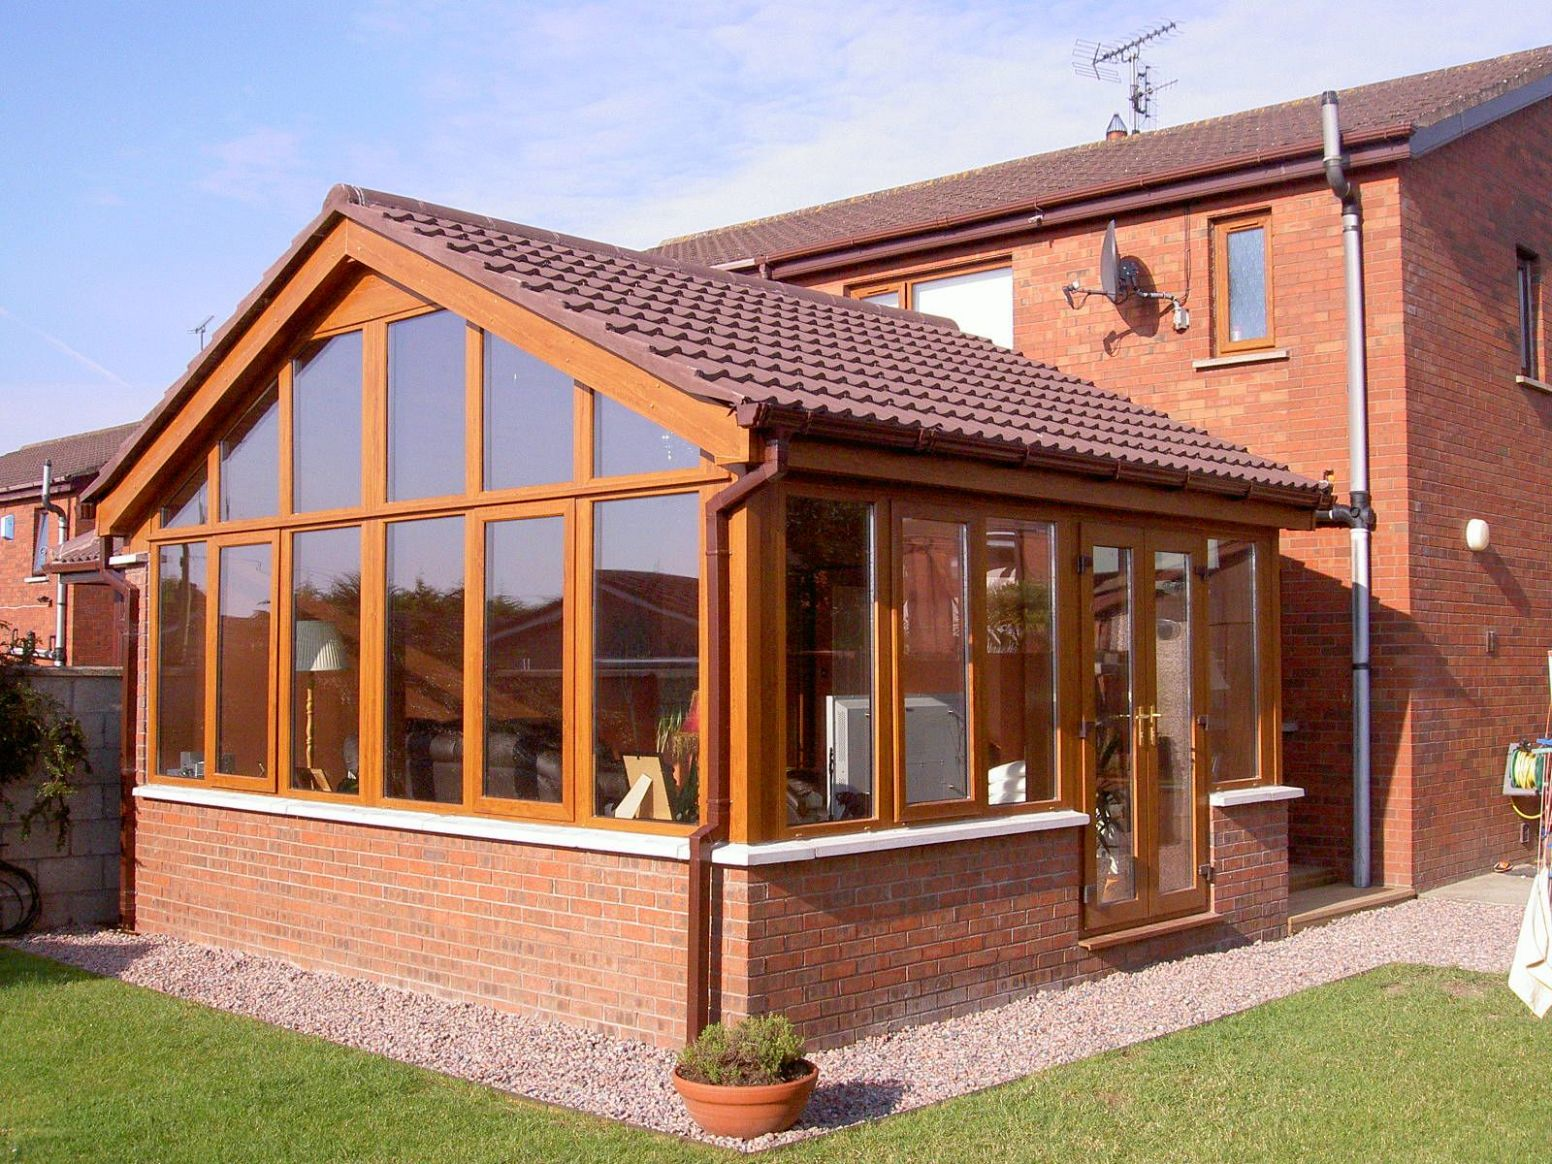 Bespoke Sunrooms in Scotland (With images)   Sunroom designs ..